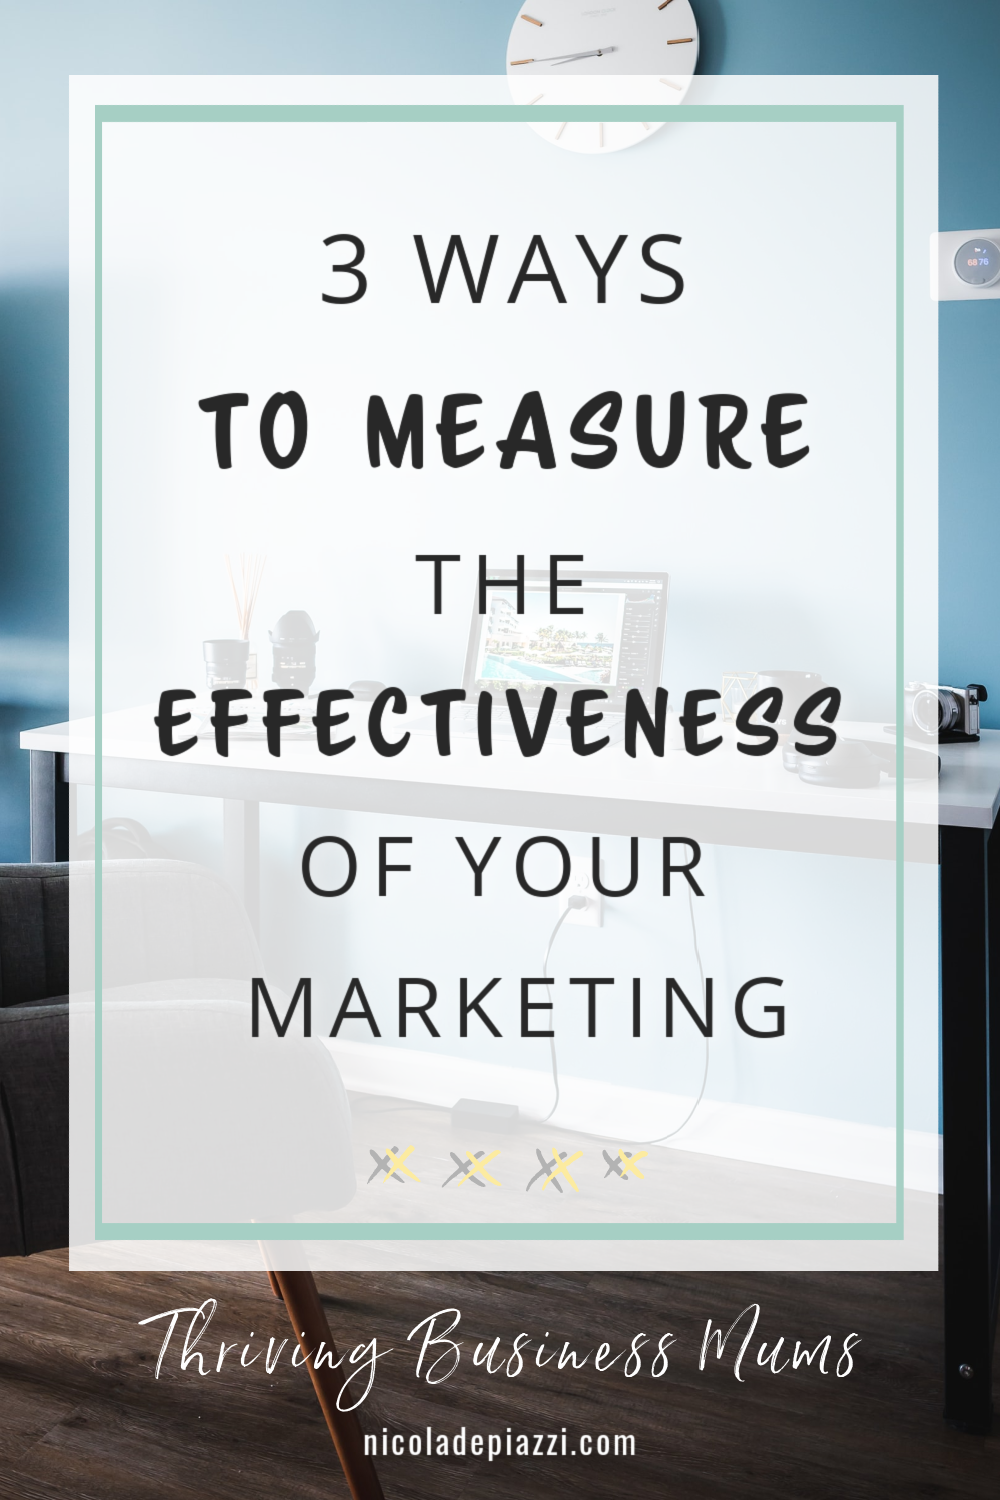 3 WAYS TO MEASURE THE EFFECTIVENESS OF YOUR MARKETING